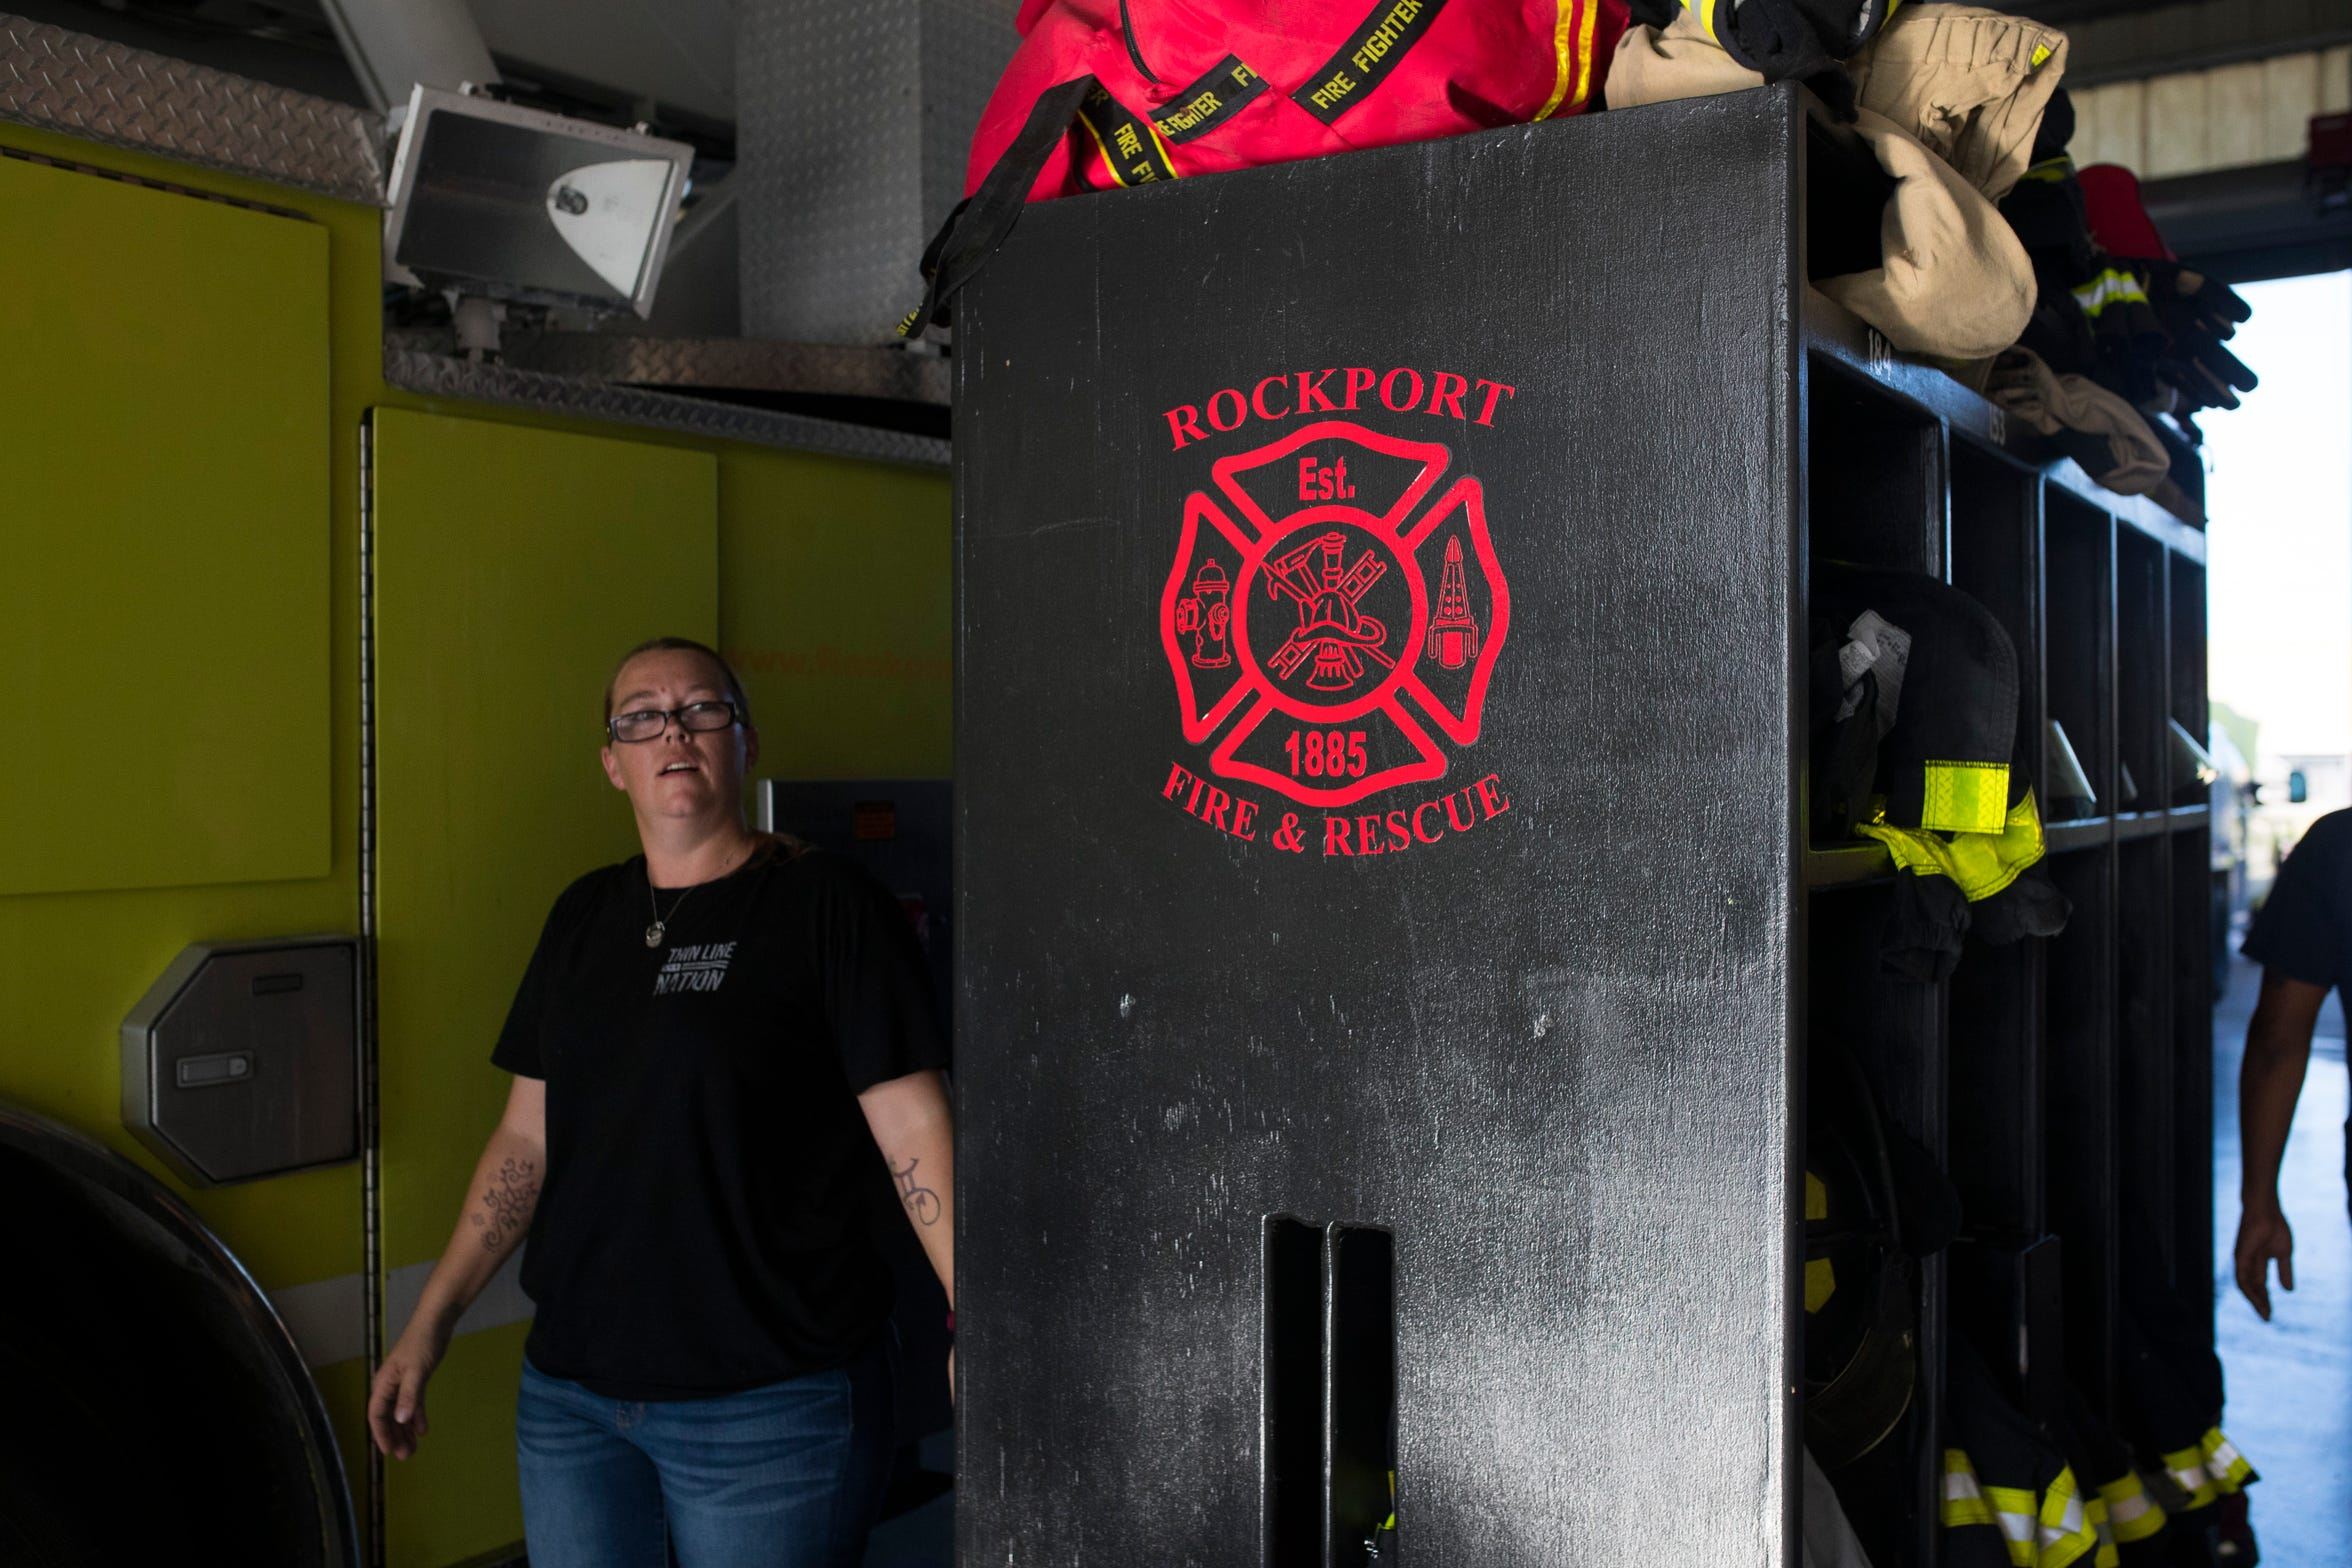 Emily Guerrero walks through the Rockport Volunteer Fire Department station during their monthly meeting on Thursday, August, 16, 2018 in Rockport. Twenty  two members of their department stayed in their station during Hurricane Harvey.